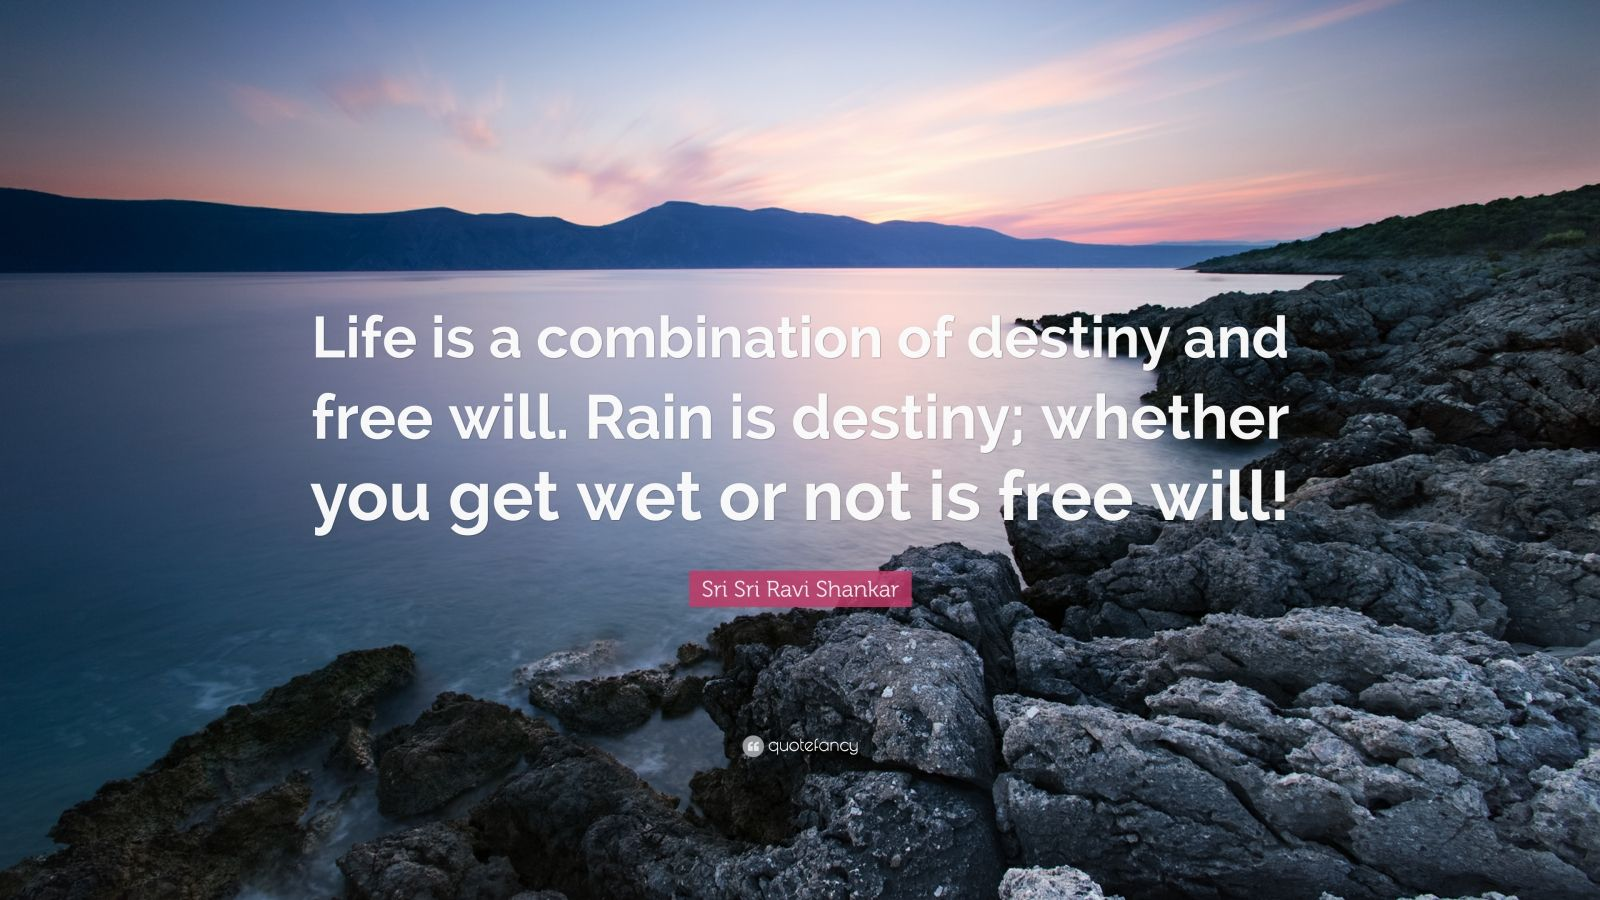 """Sri Sri Ravi Shankar Quote: """"Life is a combination of destiny and free will. Rain is destiny; whether you get wet or not is free will!"""""""